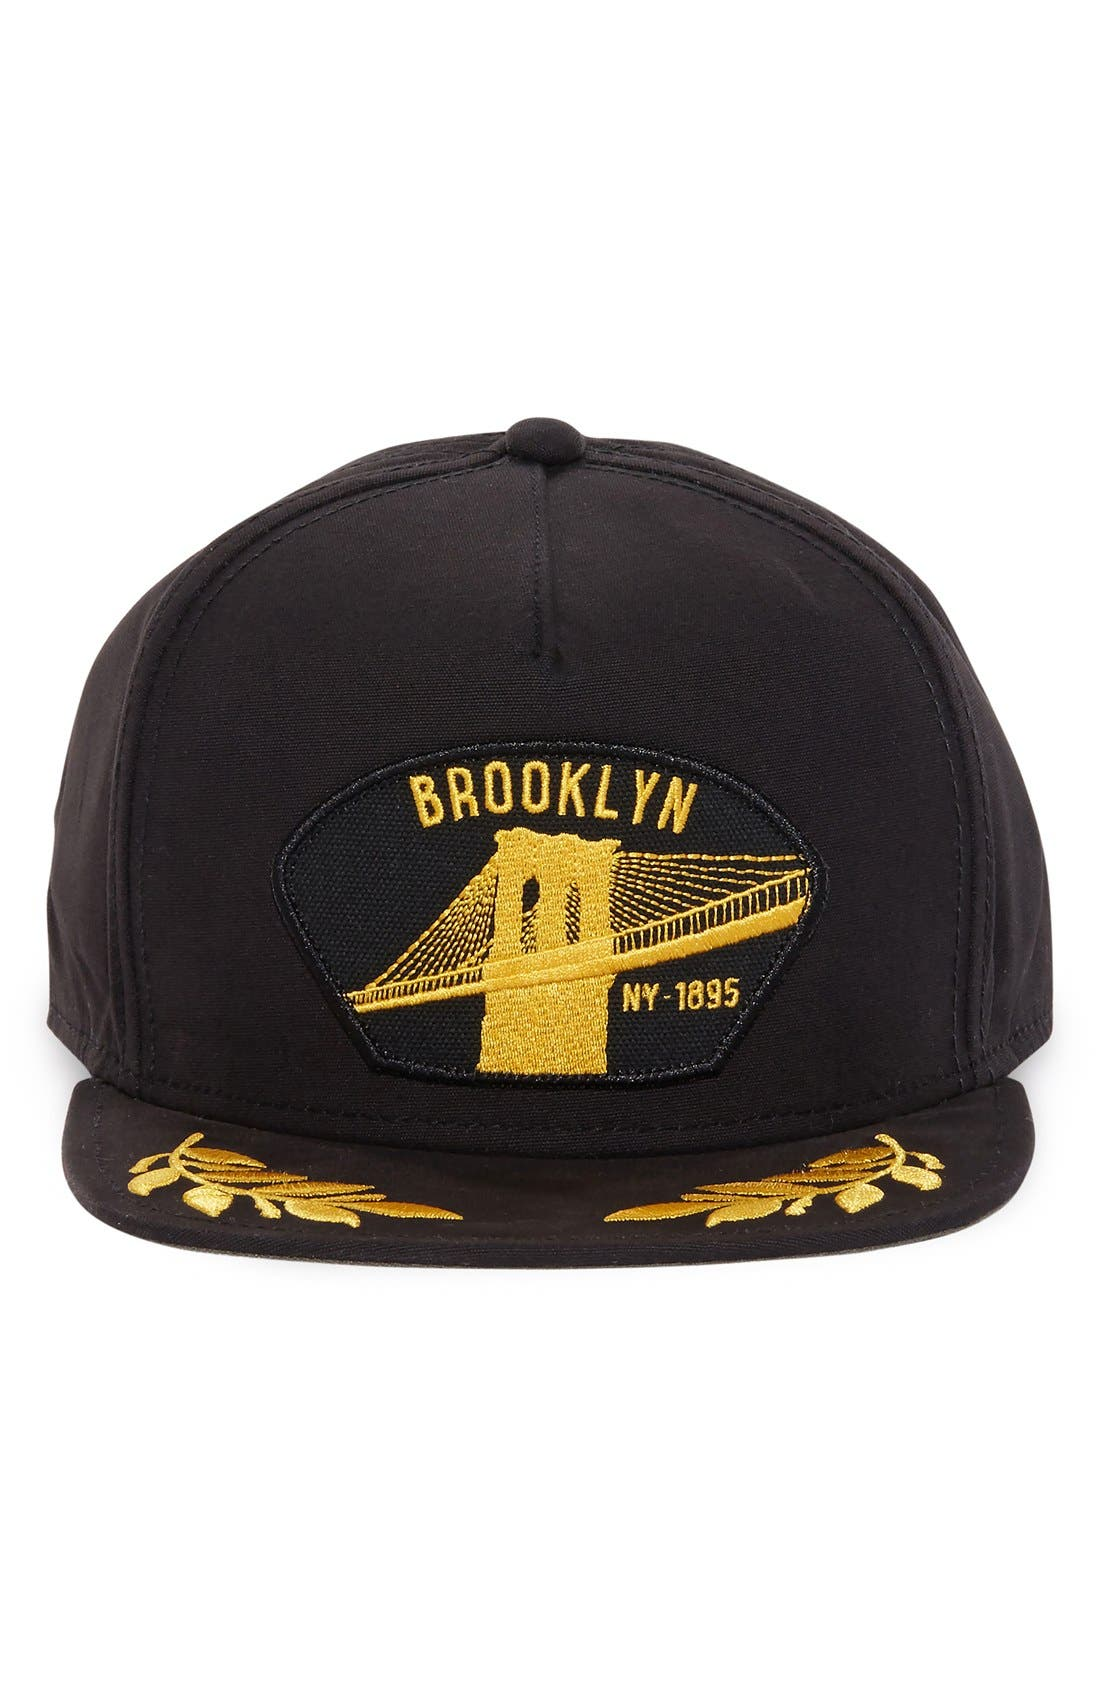 'Brooklyn Steel' Snapback Cap,                             Alternate thumbnail 4, color,                             001